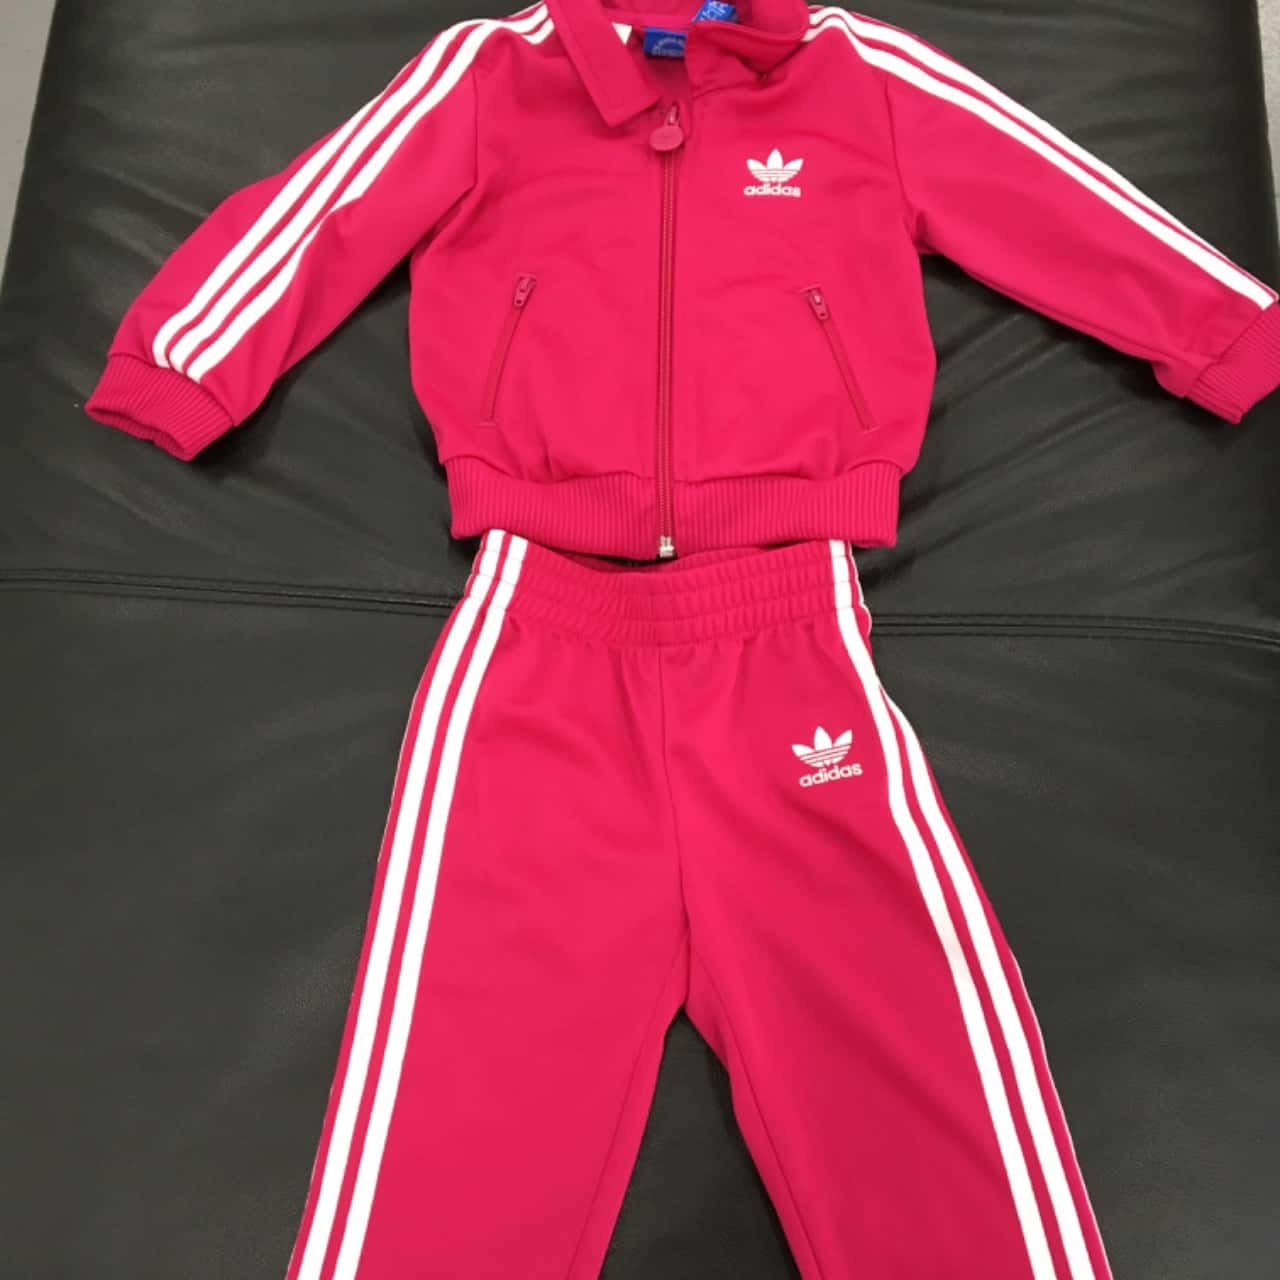 Adidas Kids Pink  Track Suit 9-12 Mths